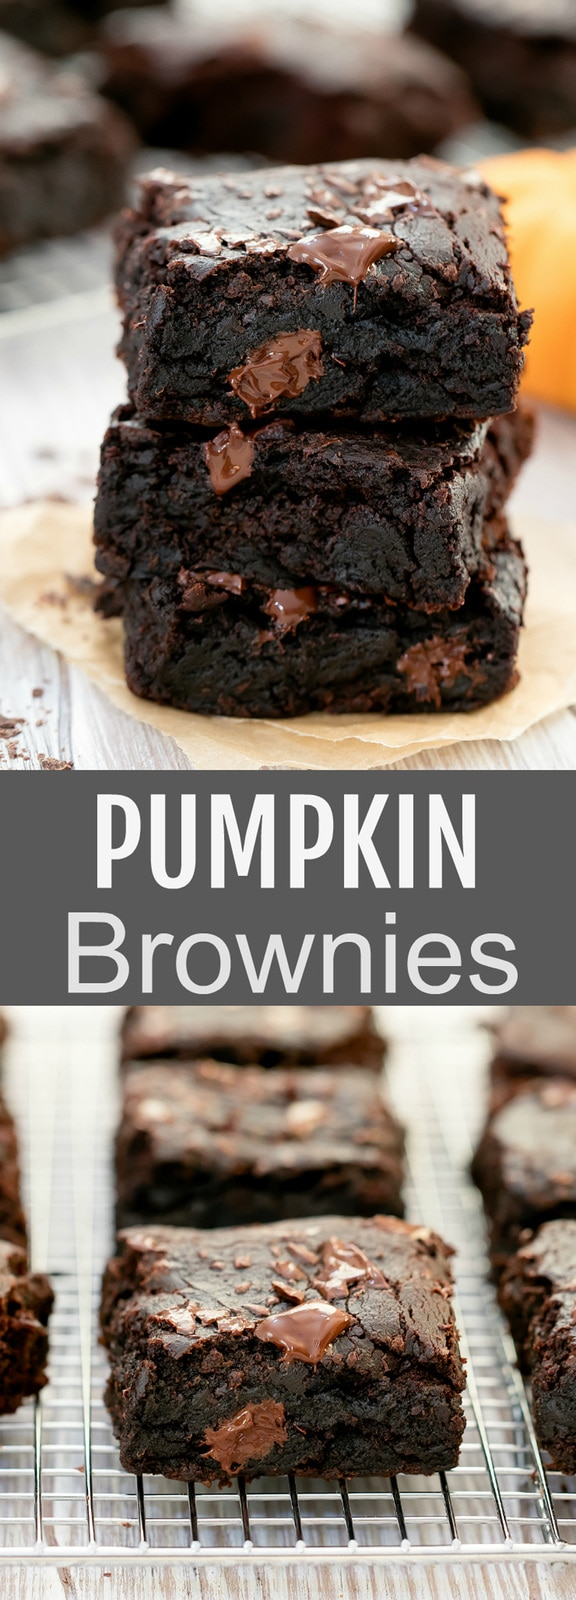 Pumpkin Brownies. Super fudgy moist chocolate brownies. This easy (eggless) one bowl recipe makes the most amazing brownies. They are also healthier with the use of pumpkin puree.